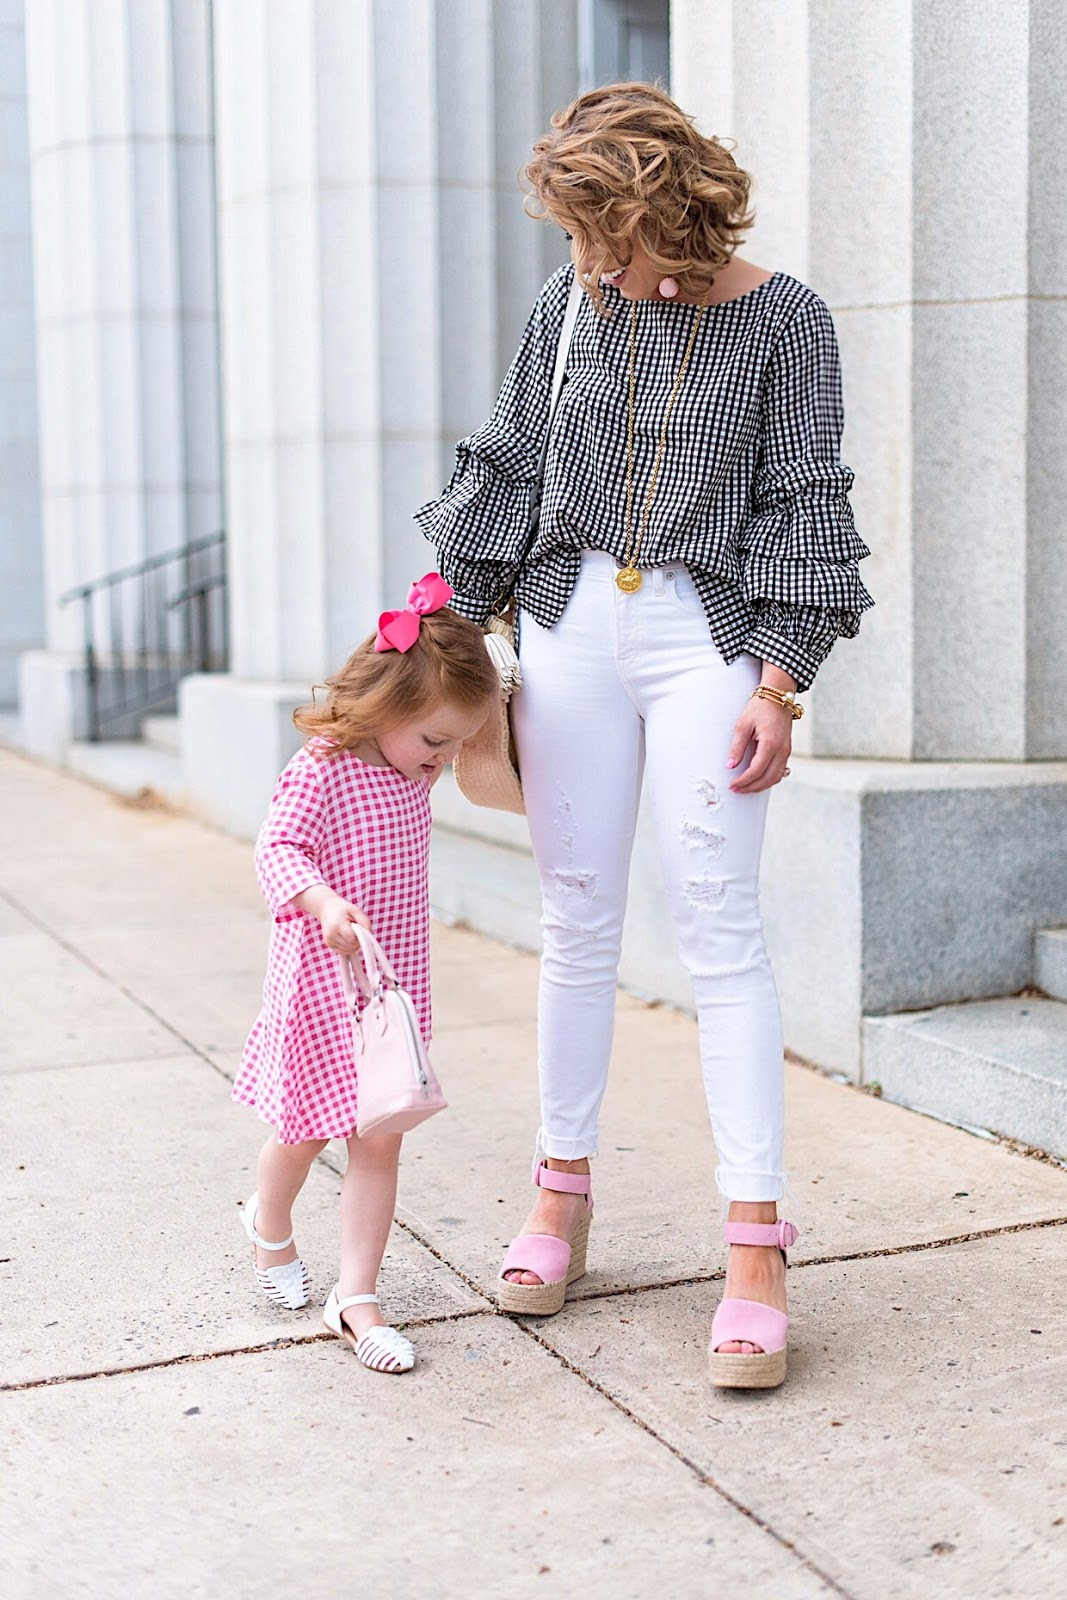 Mommy & Me in Gingham - Click through to see the full post on Something Delightful Blog